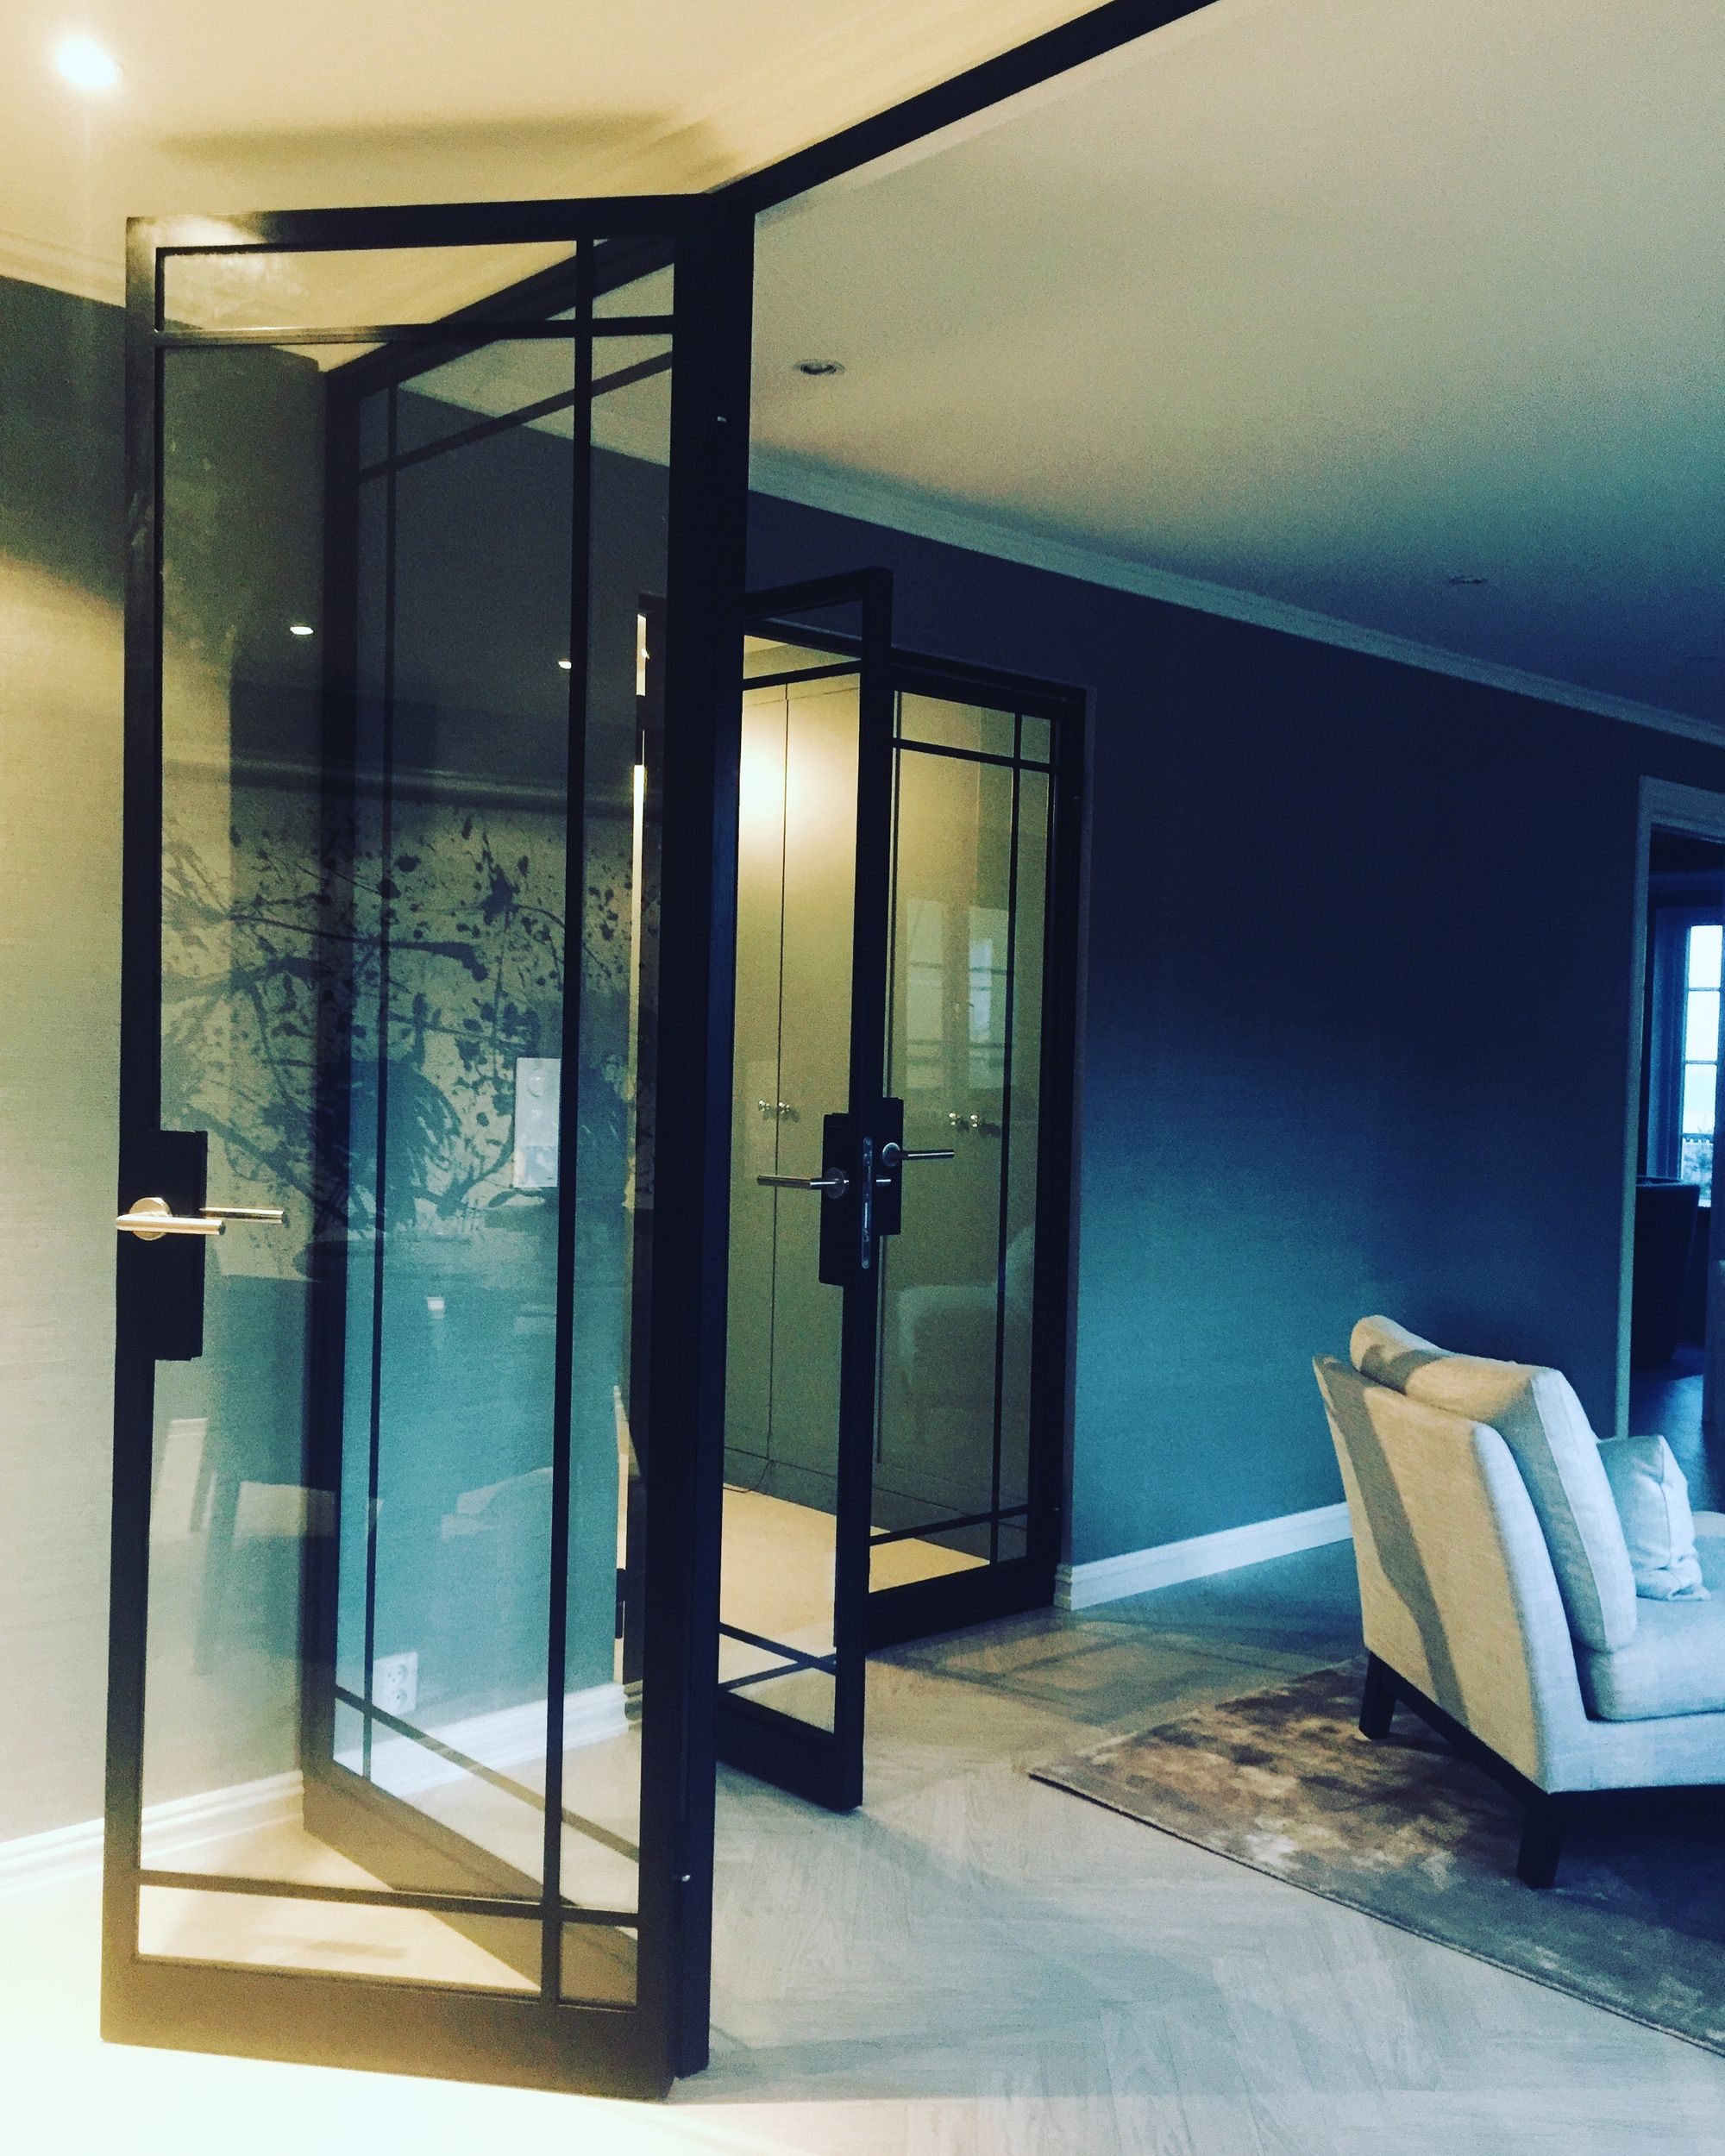 Modern double french doors and french doors with fixed glass…